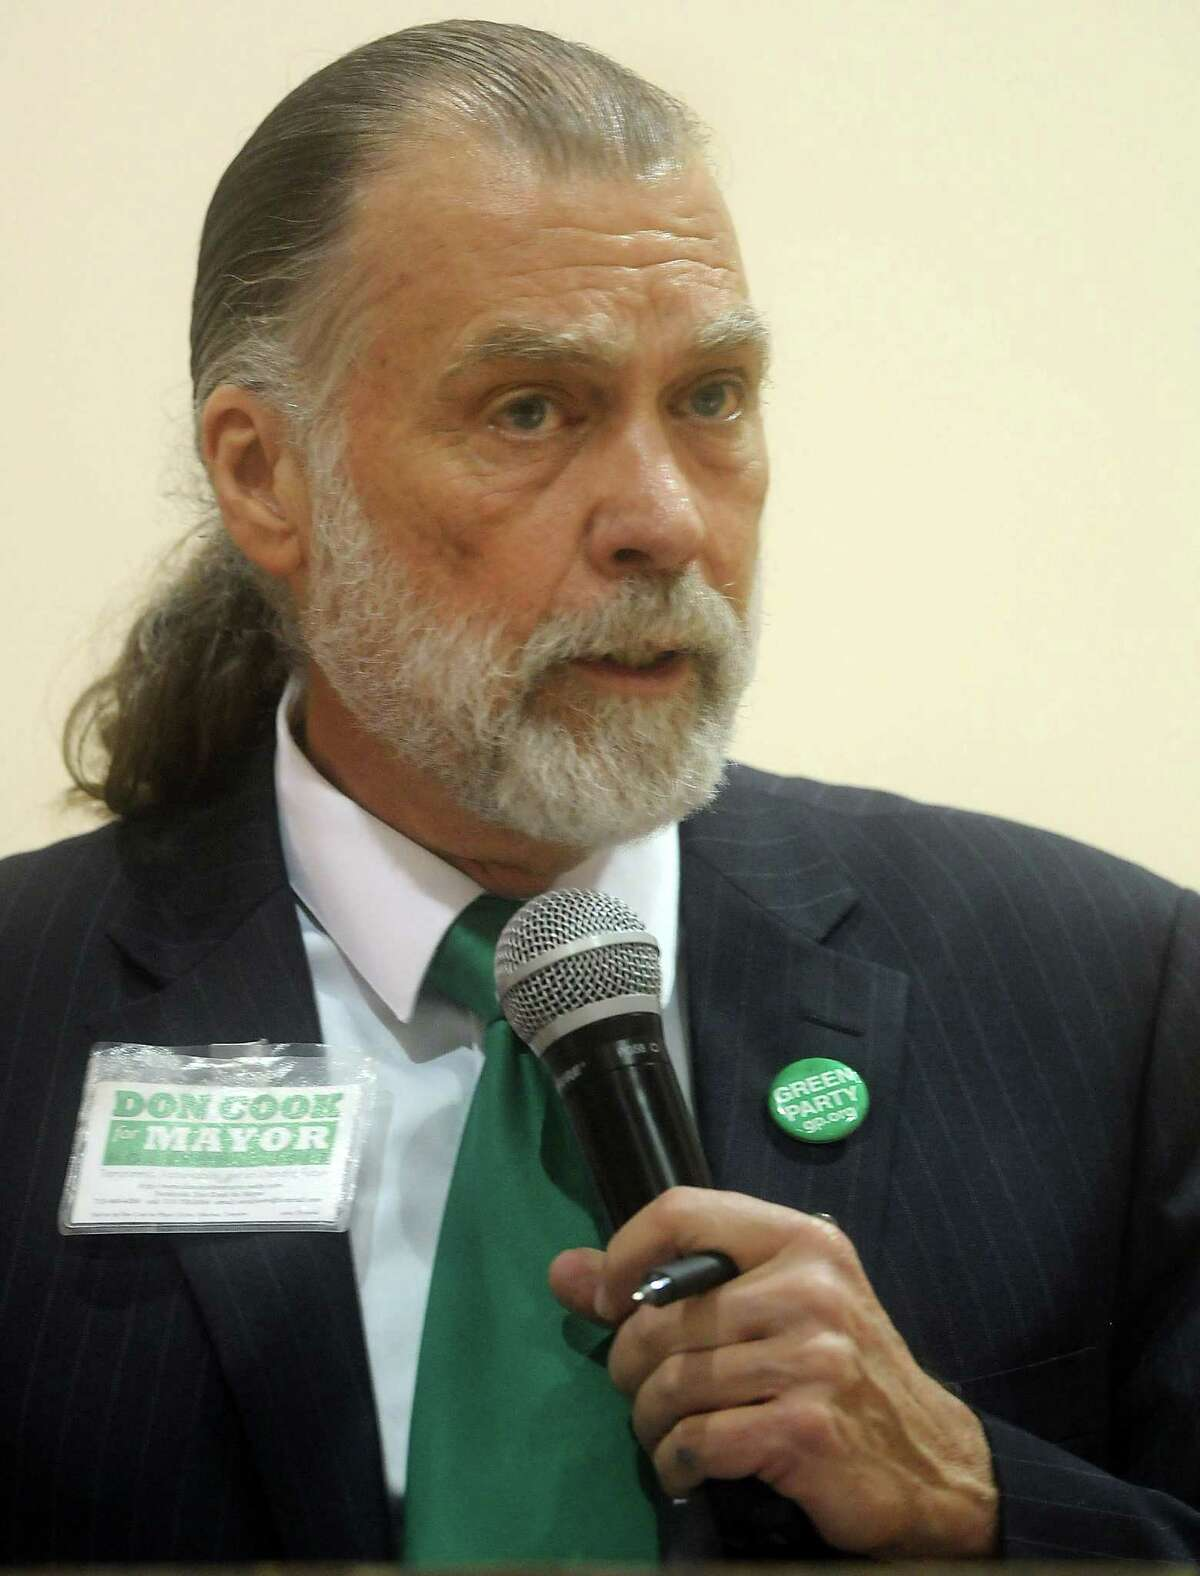 Candidate Don Cook at a 2013 Mayoral Forum sponsored by the Baptist Ministers Association of Houston at the J.J. Roberson Family Life Center August 17, 2013.(Dave Rossman photo)